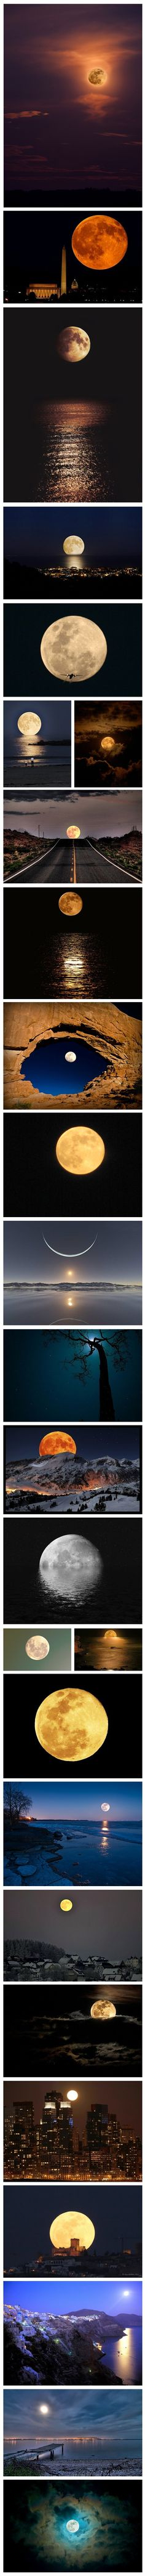 "A collection of the best Lunar images, inspired by the ""Supermoon"" of May 5, 2012. S)"